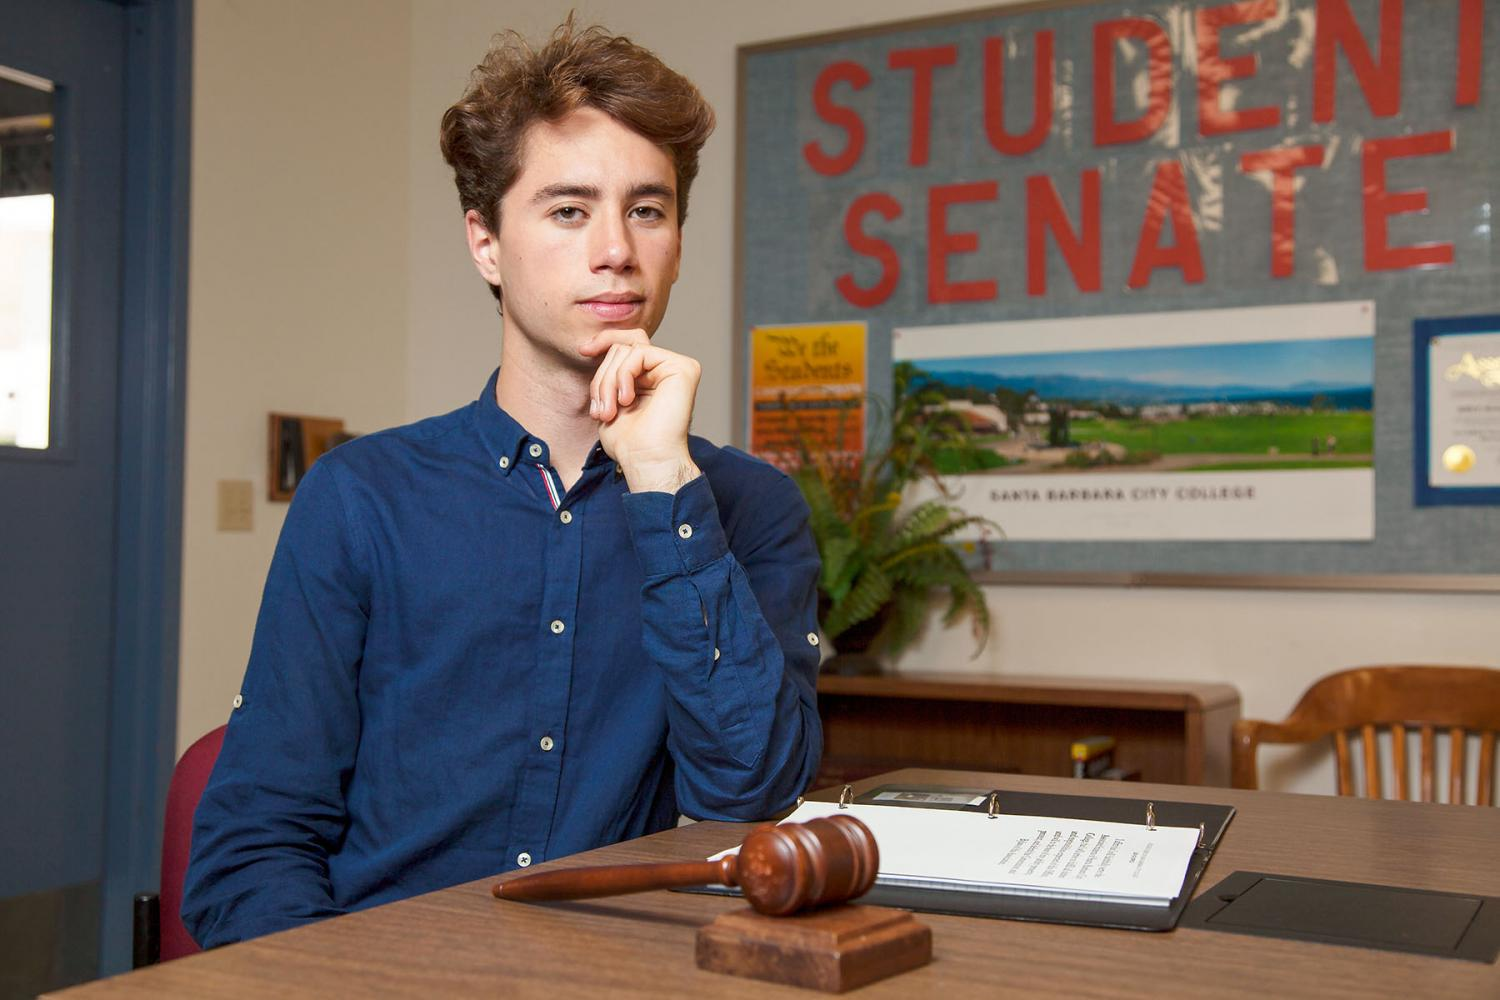 Student+Senate+President+Dylan+Raiman+on+Friday%2C+April+28%2C++in+the+Campus+Center+Room+223+at+City+College.+Raiman+will+be+attending+the+University+of+California+Berkeley+in+the+fall.